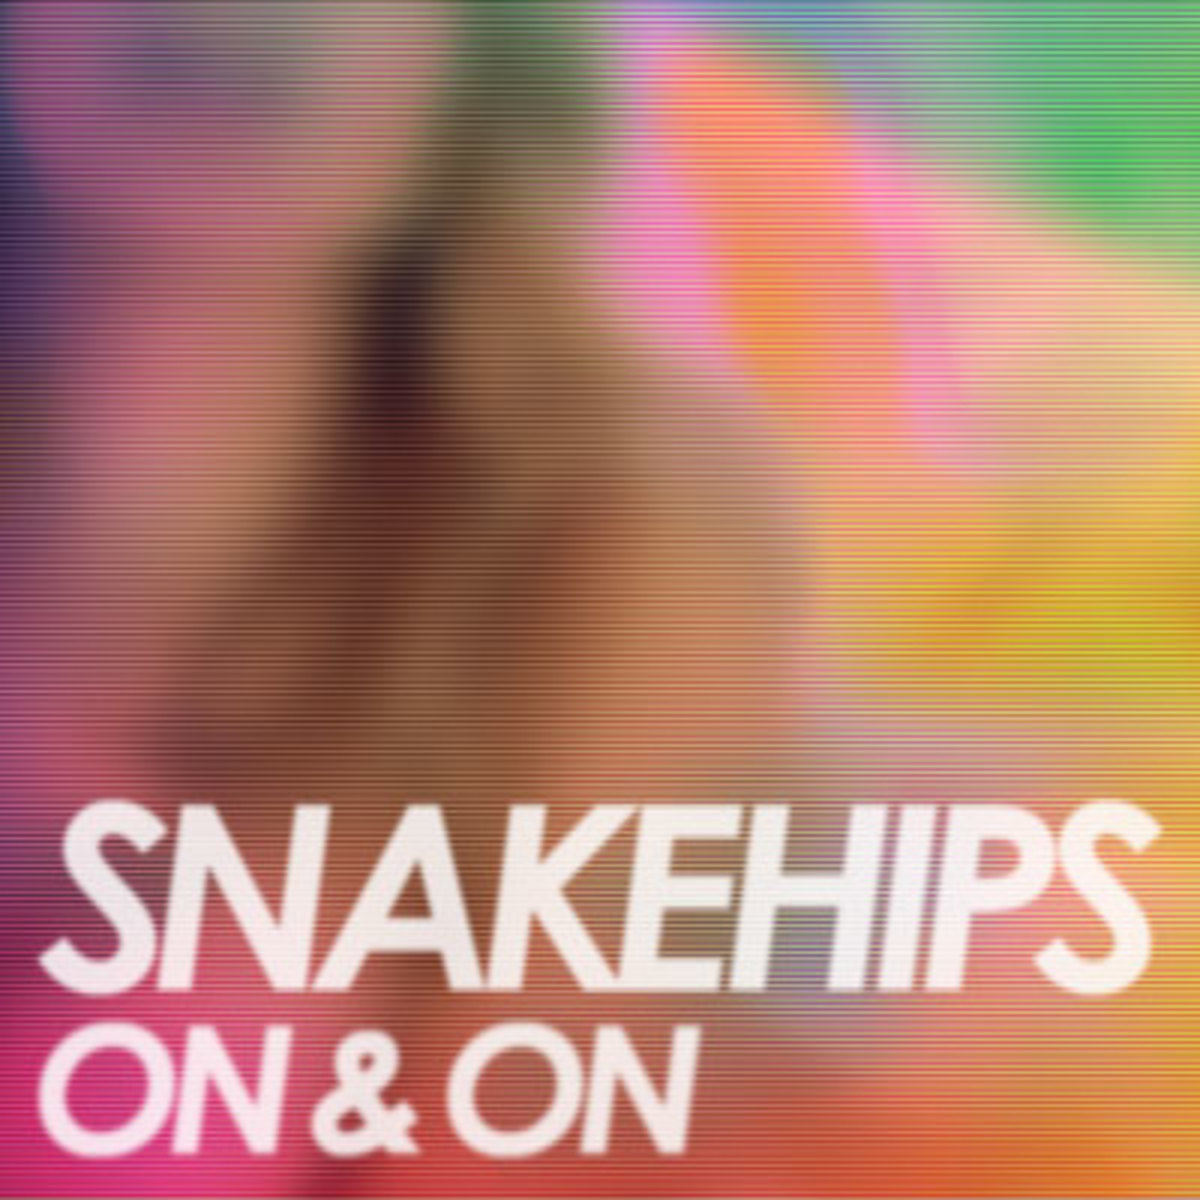 snakehips-onandon.jpg